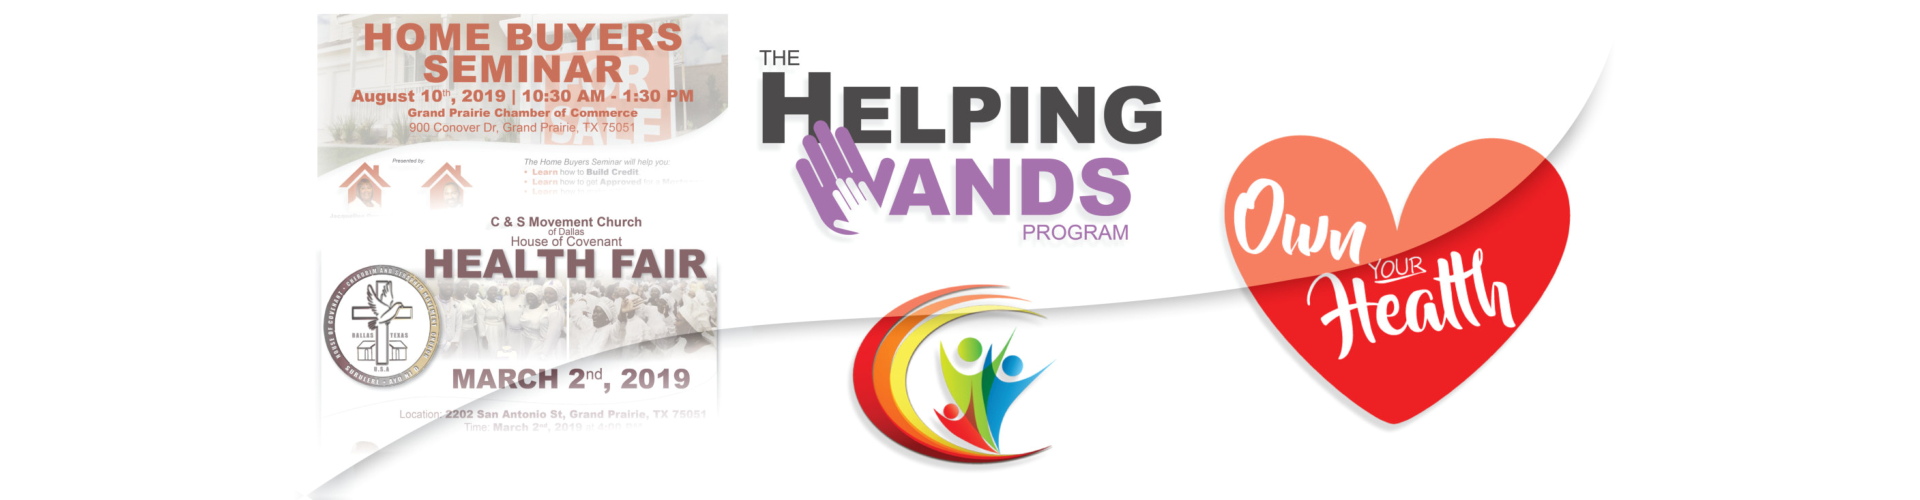 Home Buyers Seminar, The Helping Hands Program, Own Your Health collage image